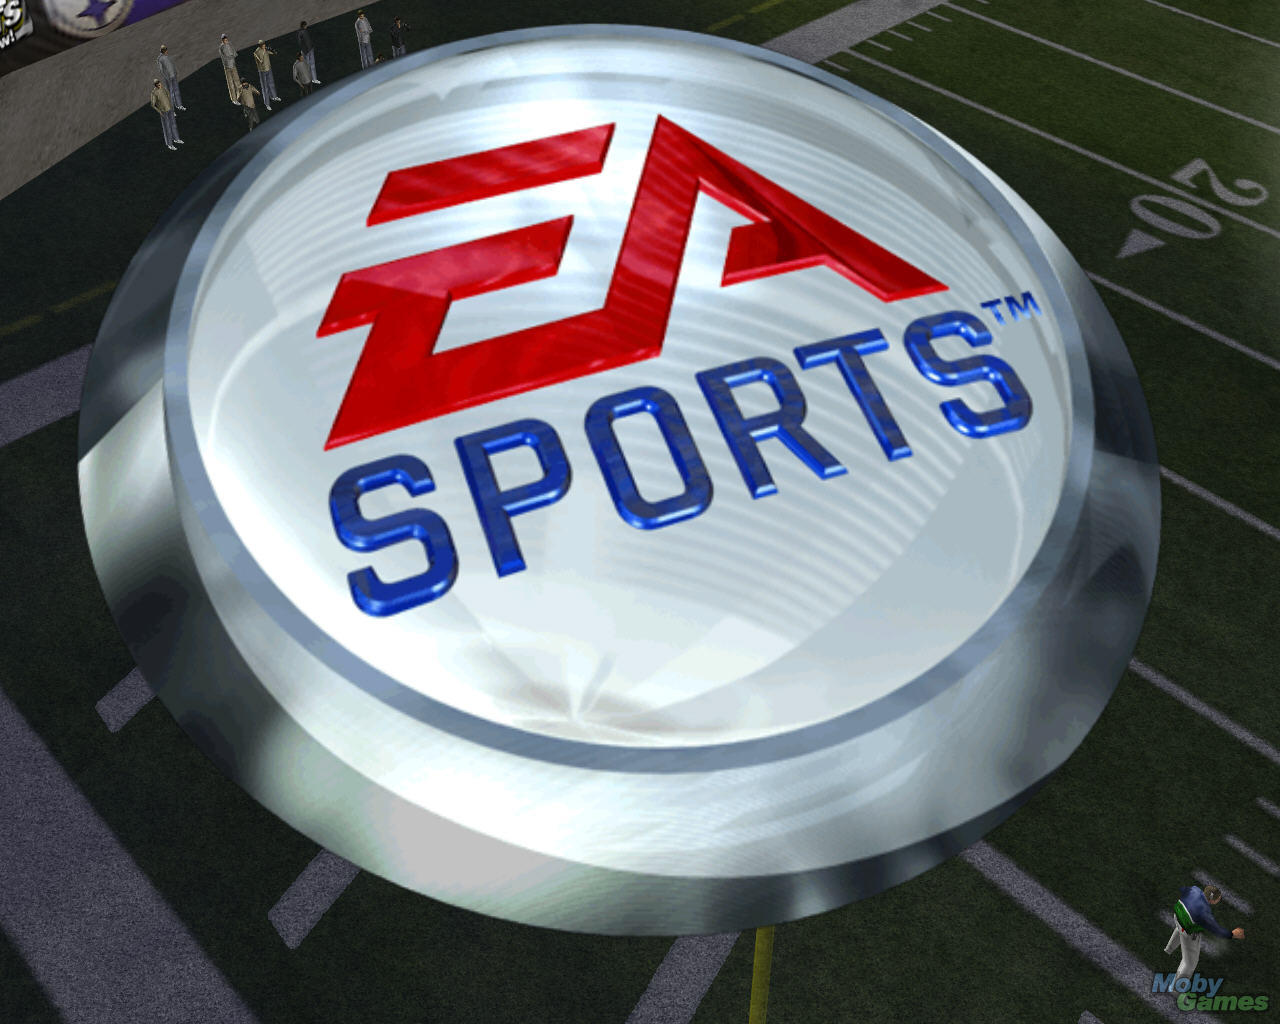 Xbox One EA Sports Announces New Sports Titles